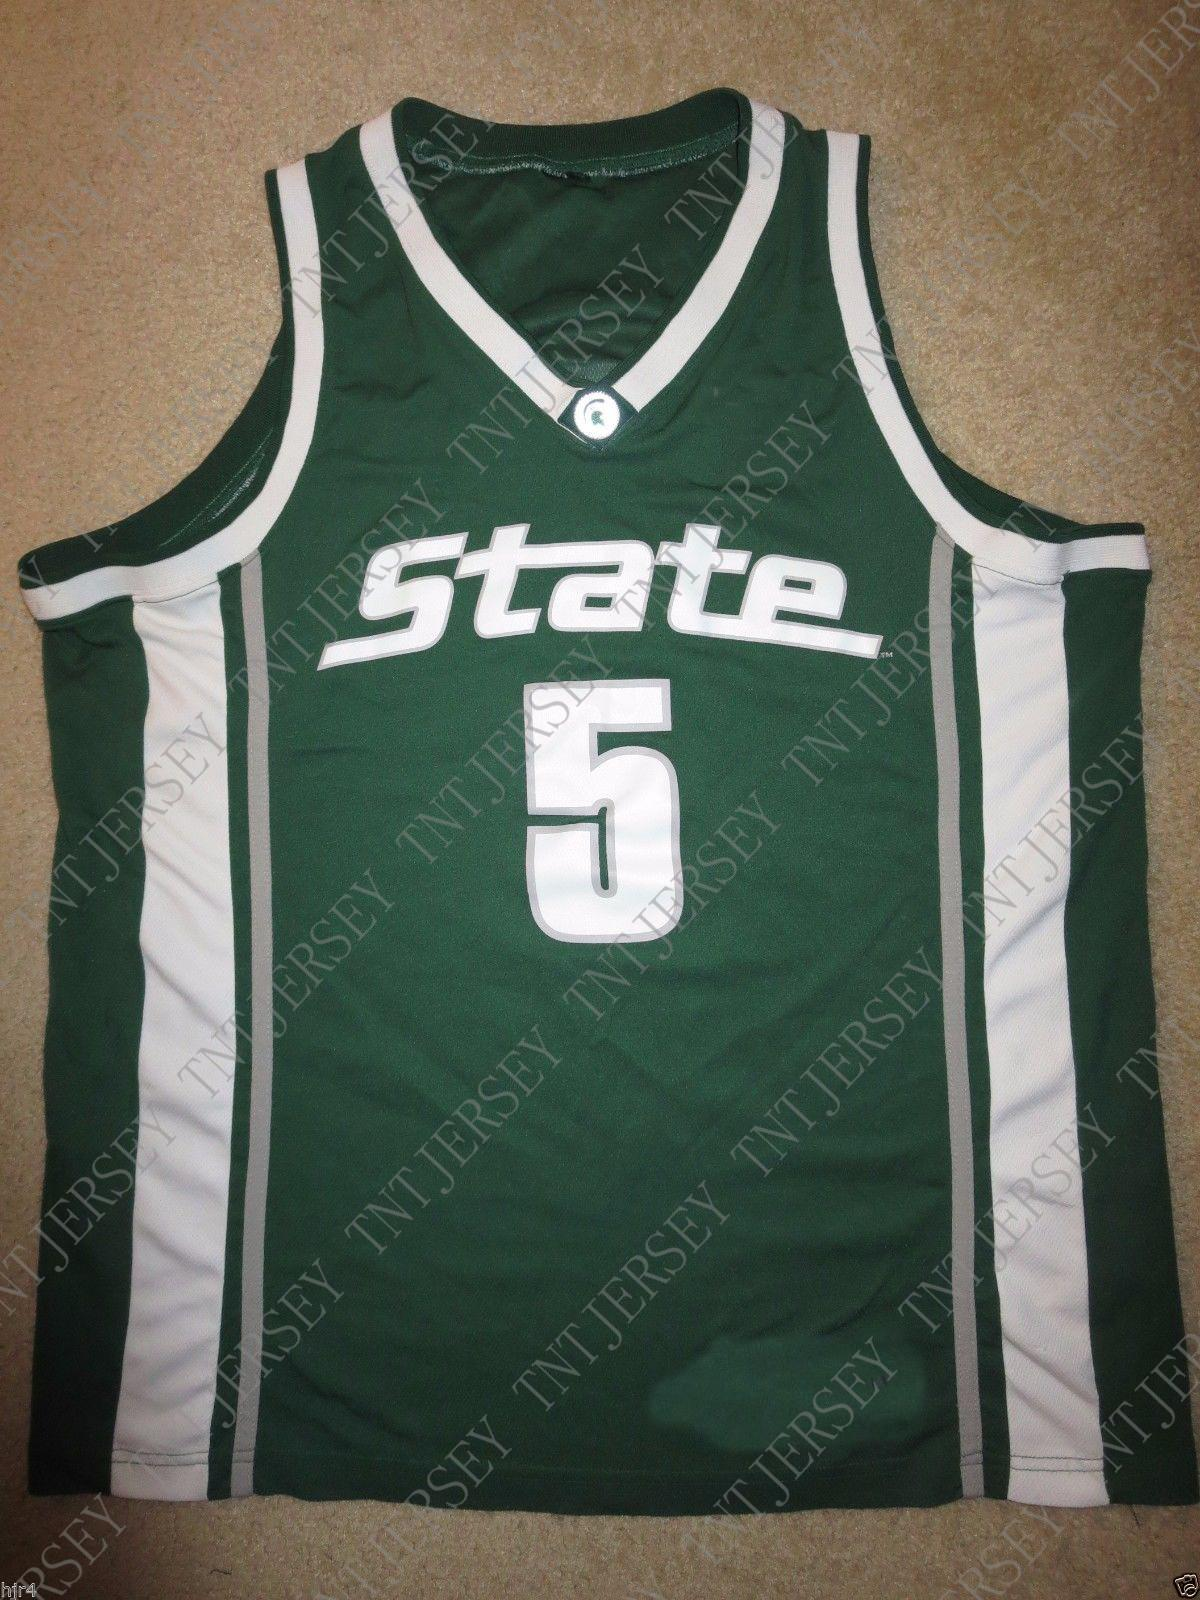 c2c87c87db75 2019 Cheap Custom Cassius Winston  5 Michigan State Spartans Hoops Jersey  Stitched Customize Any Number Name MEN WOMEN YOUTH XS 5XL From Tntjersey